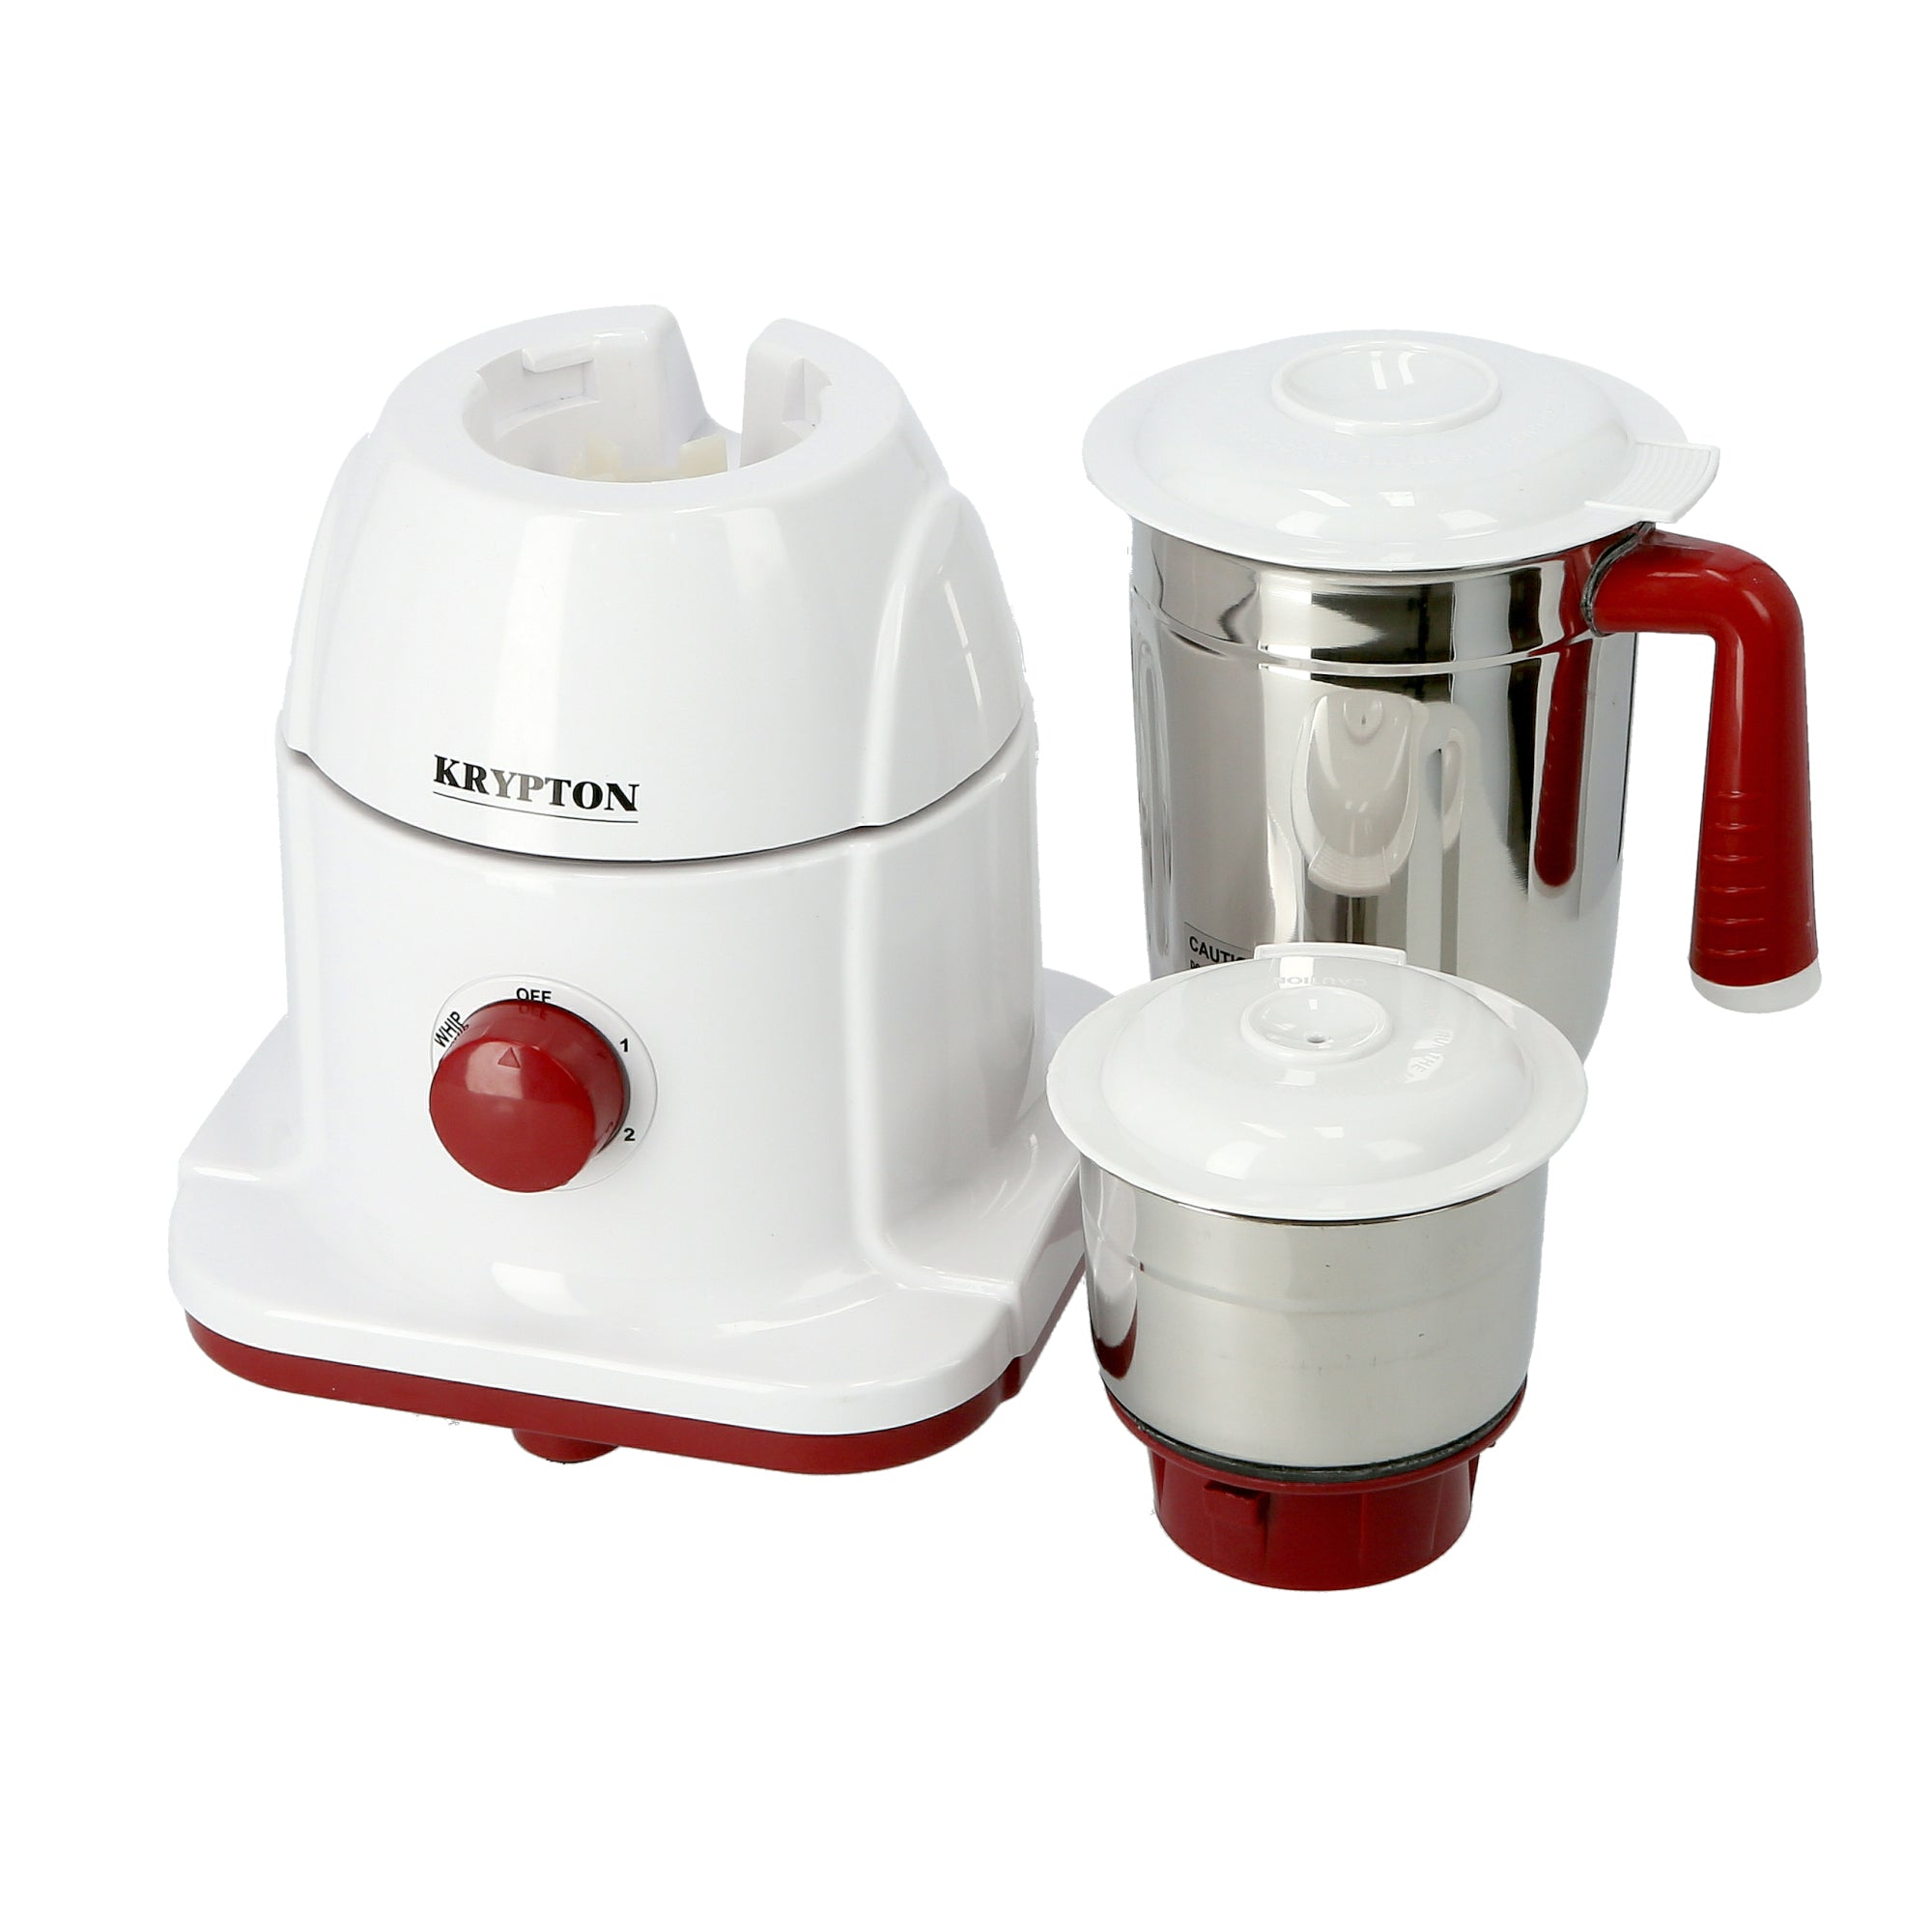 550W Powerful Mixer Grinder, 2 in 1 with 2 Jars | Powerful Copper Motor | with Double Oil Seal| Heavy Duty